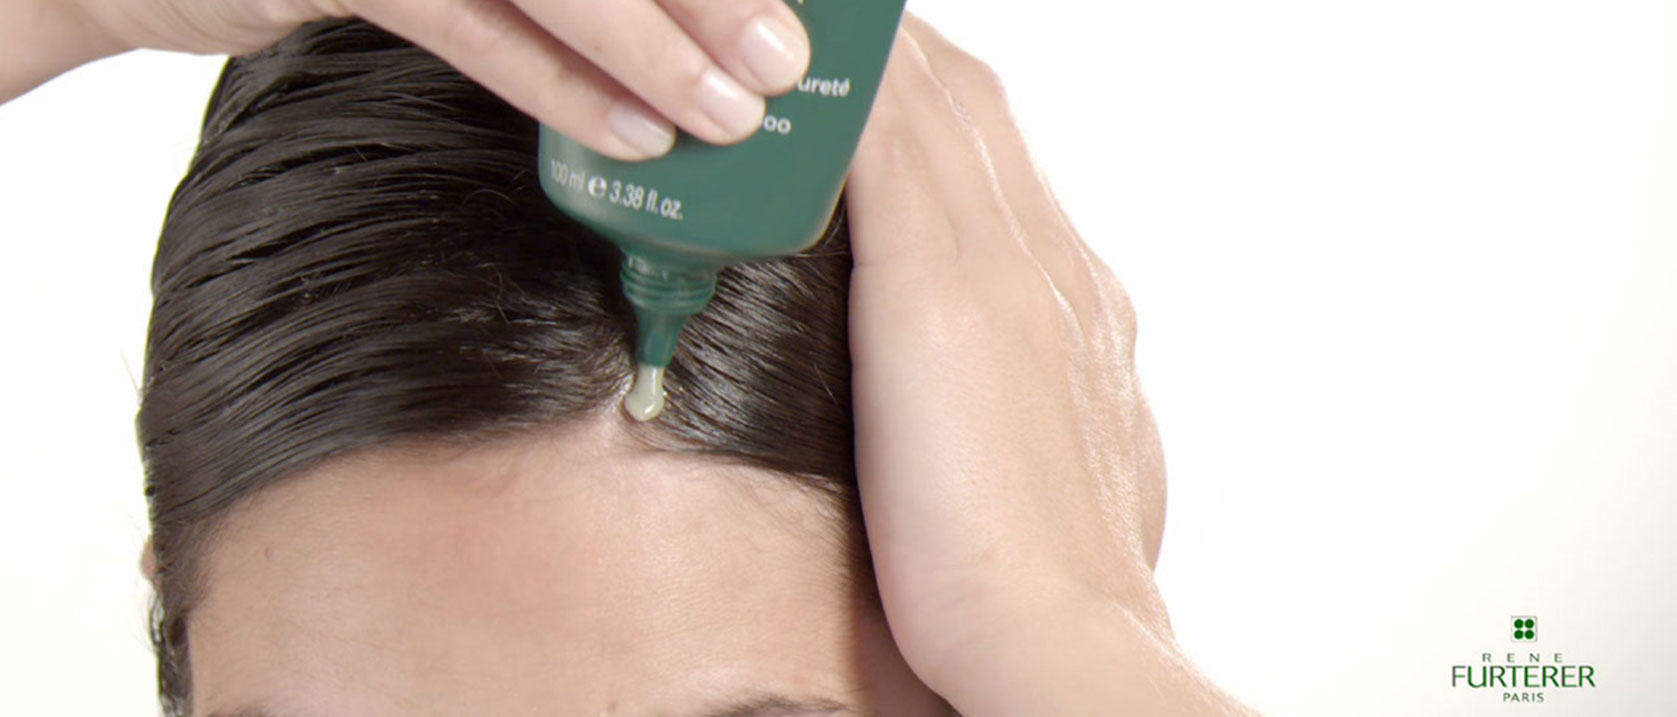 How to apply Curbicia purifying clay shampoo | René Furterer